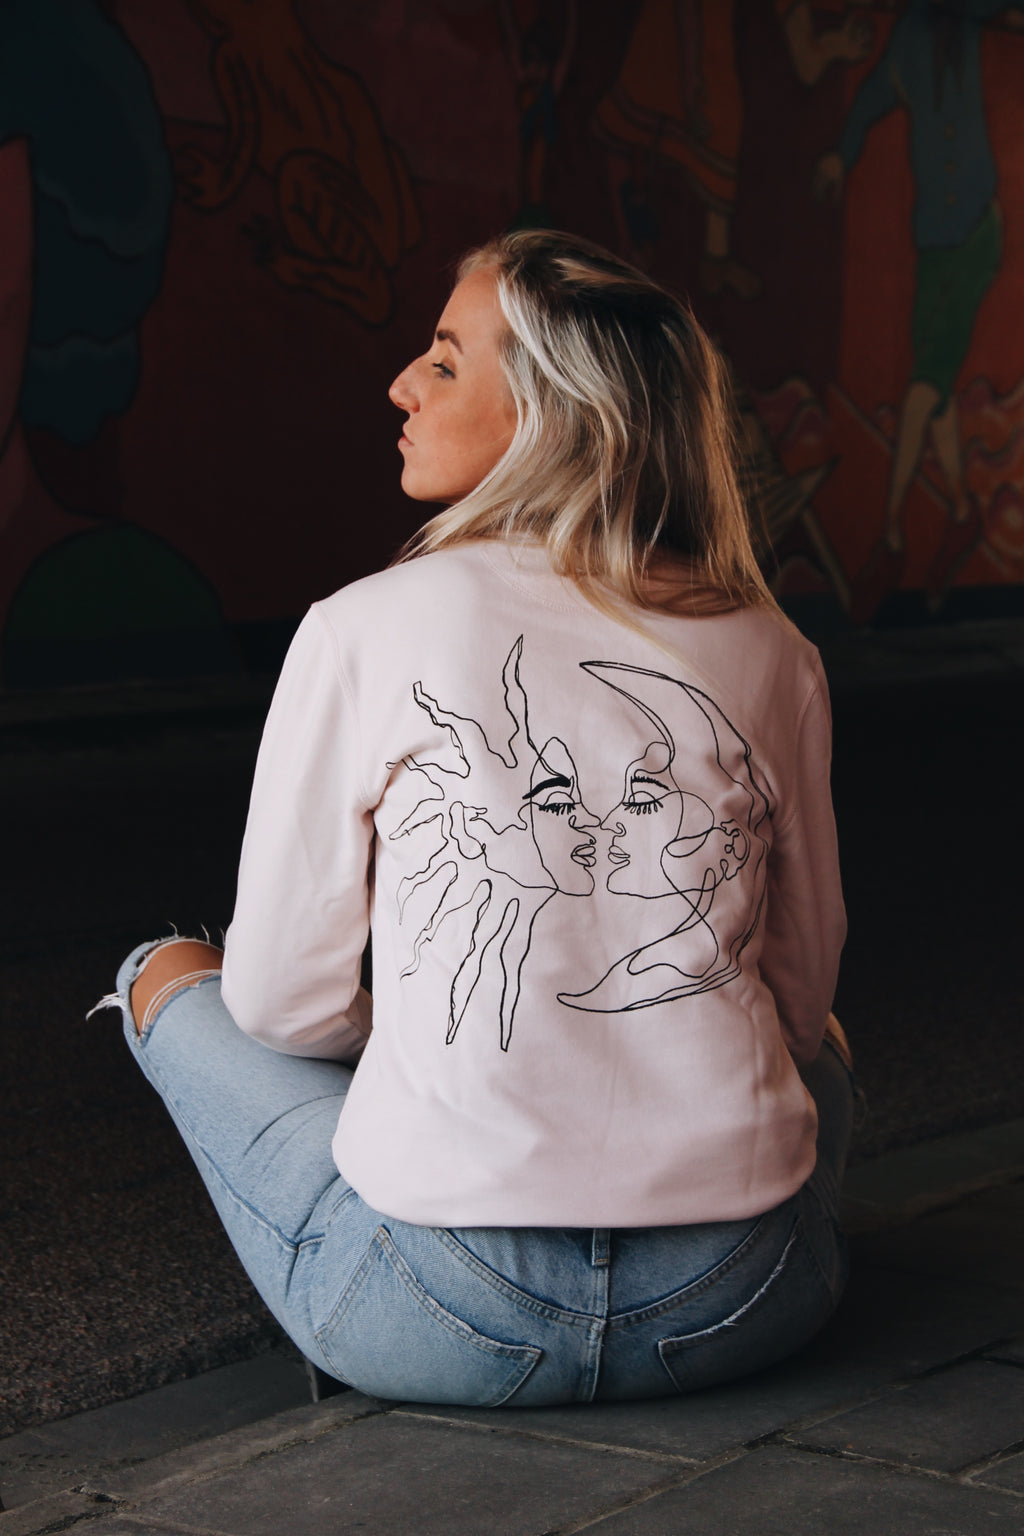 JNGL Clothing - Sun Moon Art Sweater // Candy Pink - Back (On Model)